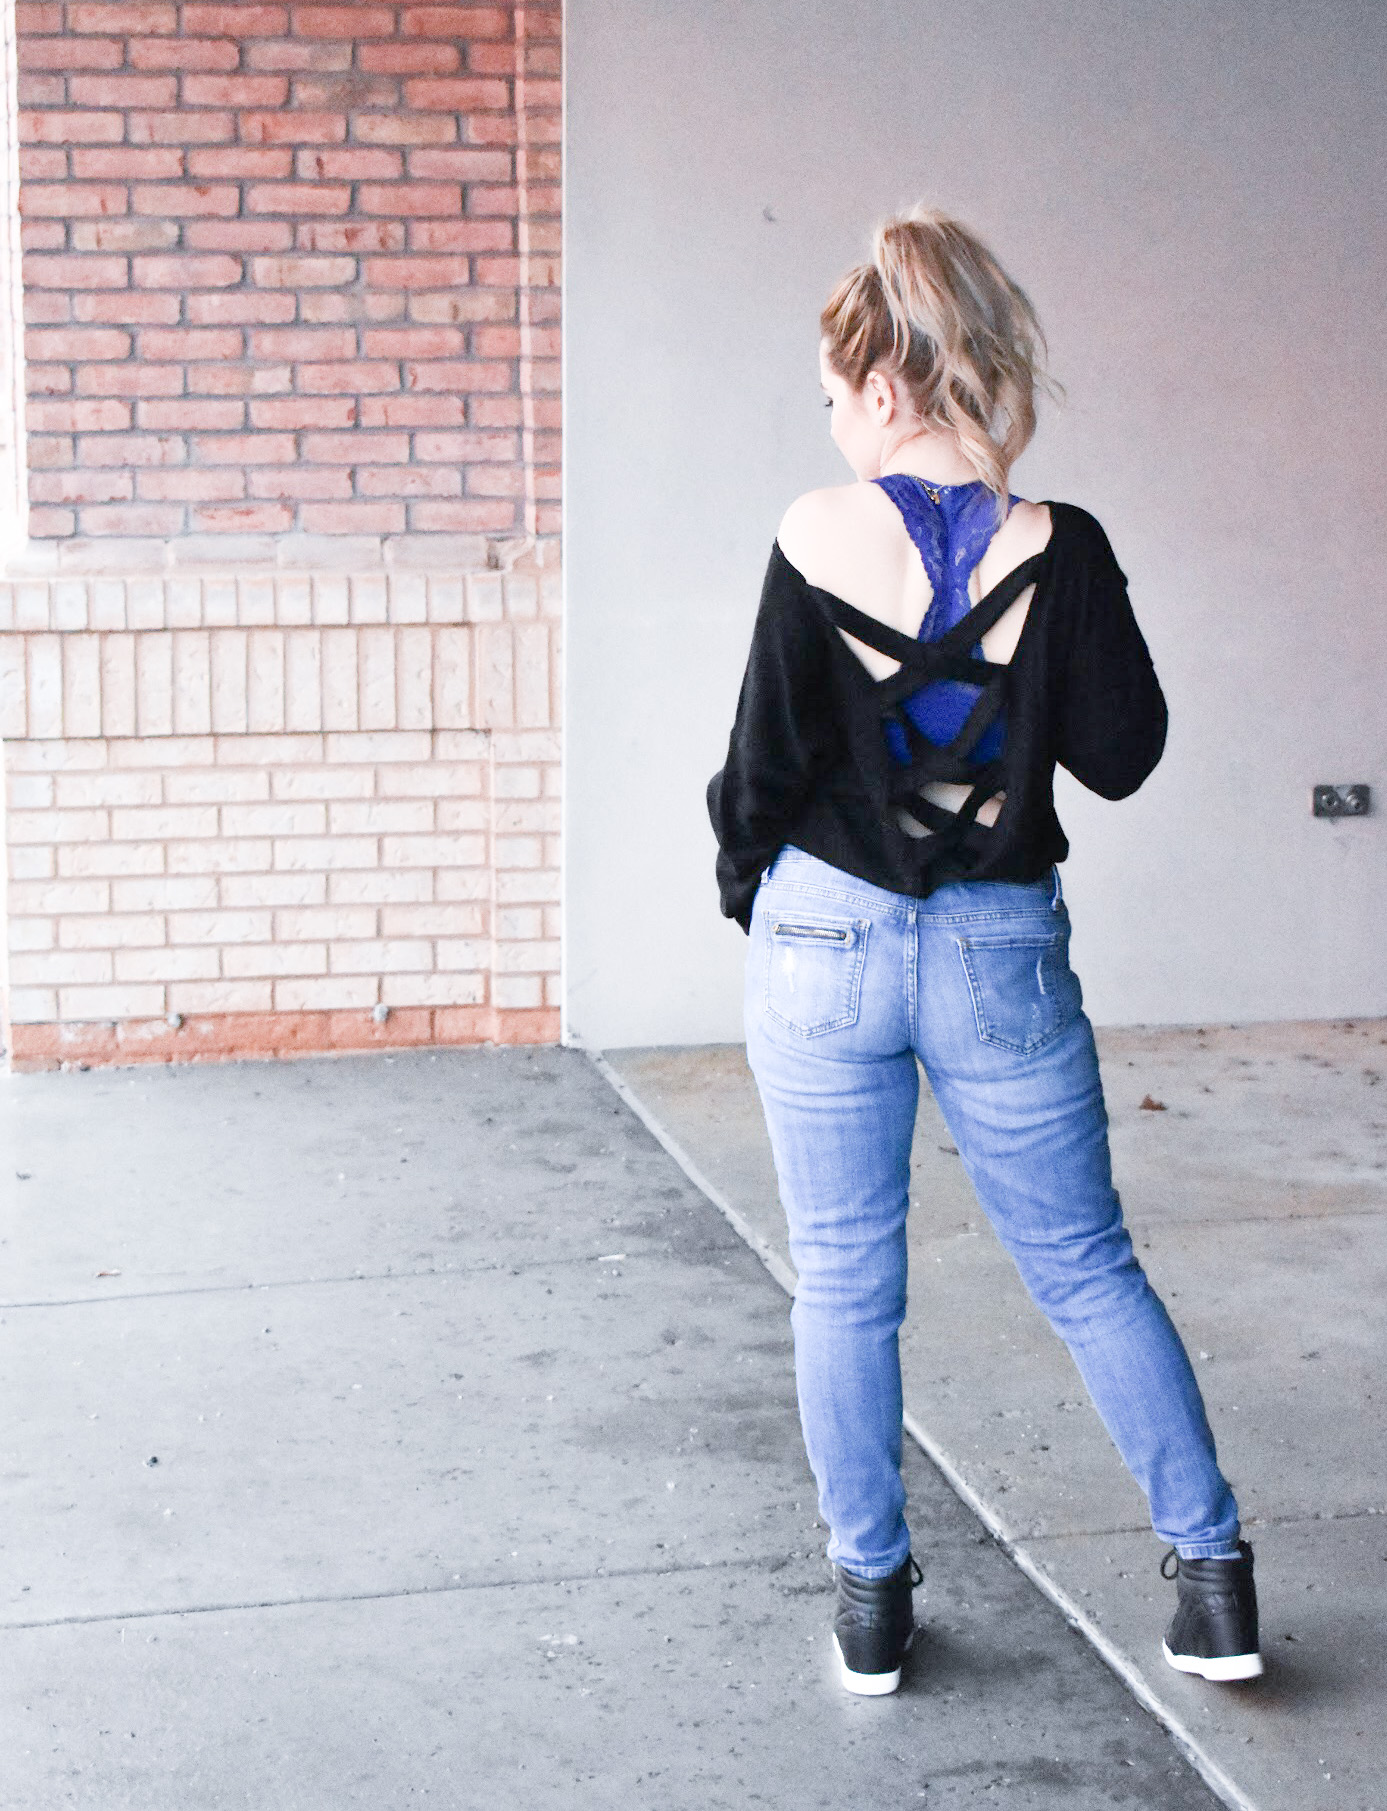 Black Criss-Cross Sweater + Bralette for Large Bust: This black criss-cross sweater styled with ripped jeans and black wedge sneakers is the perfect mix of sporty and sexy for your next date night! Plus, the perfect affordable bralette for large bust ladies. Fashion blogger COVET by tricia shows how to style a perfect date night look mixing black and denim.